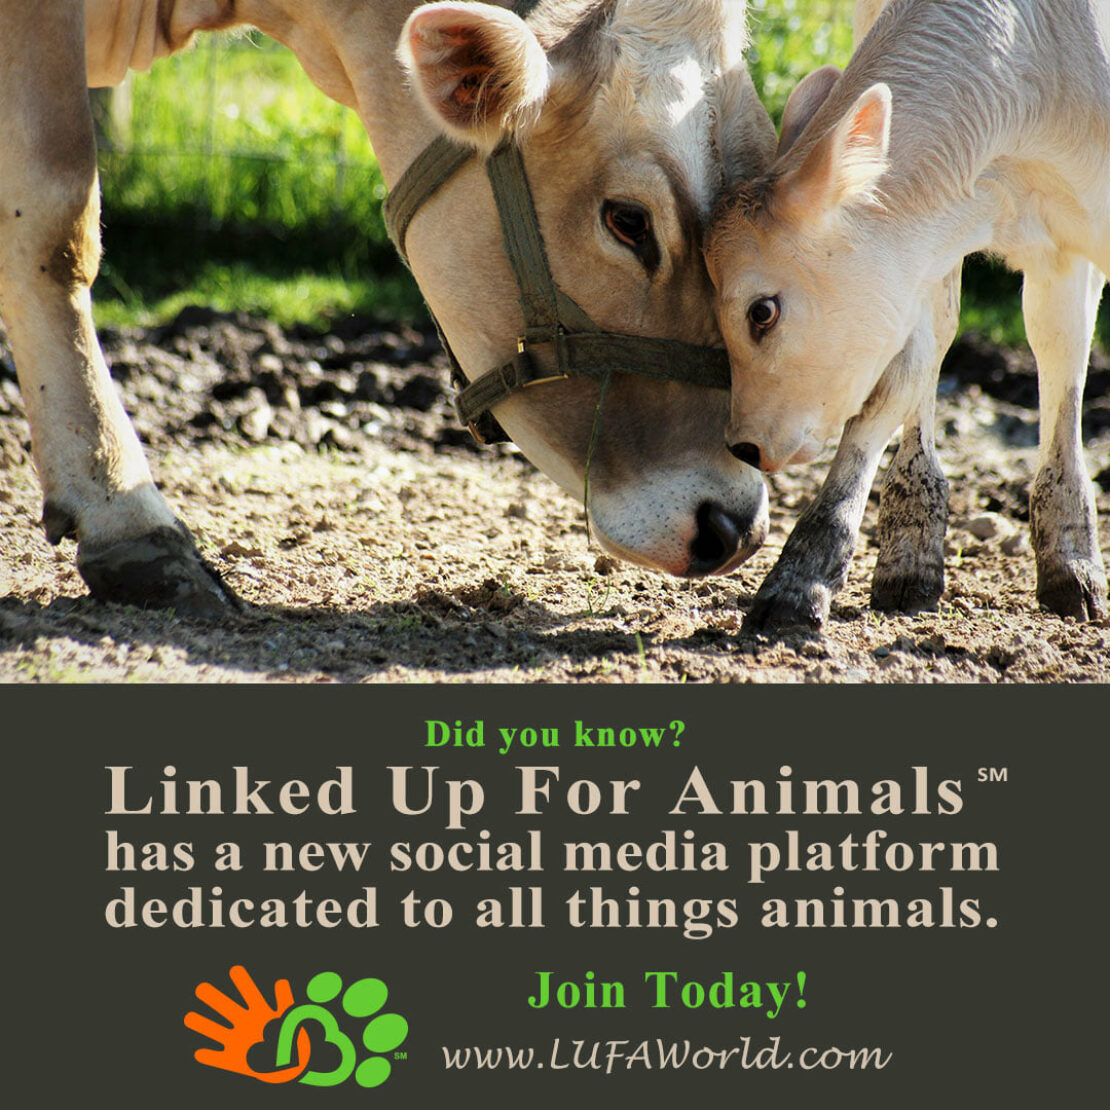 """two cows are rubbing their heads on a grassy area.  The text reads """"Connected for animals"""" has a new social media platform dedicated to all things animals.  Join today!  A small graphic of an orange hand tied to a green paw is next."""